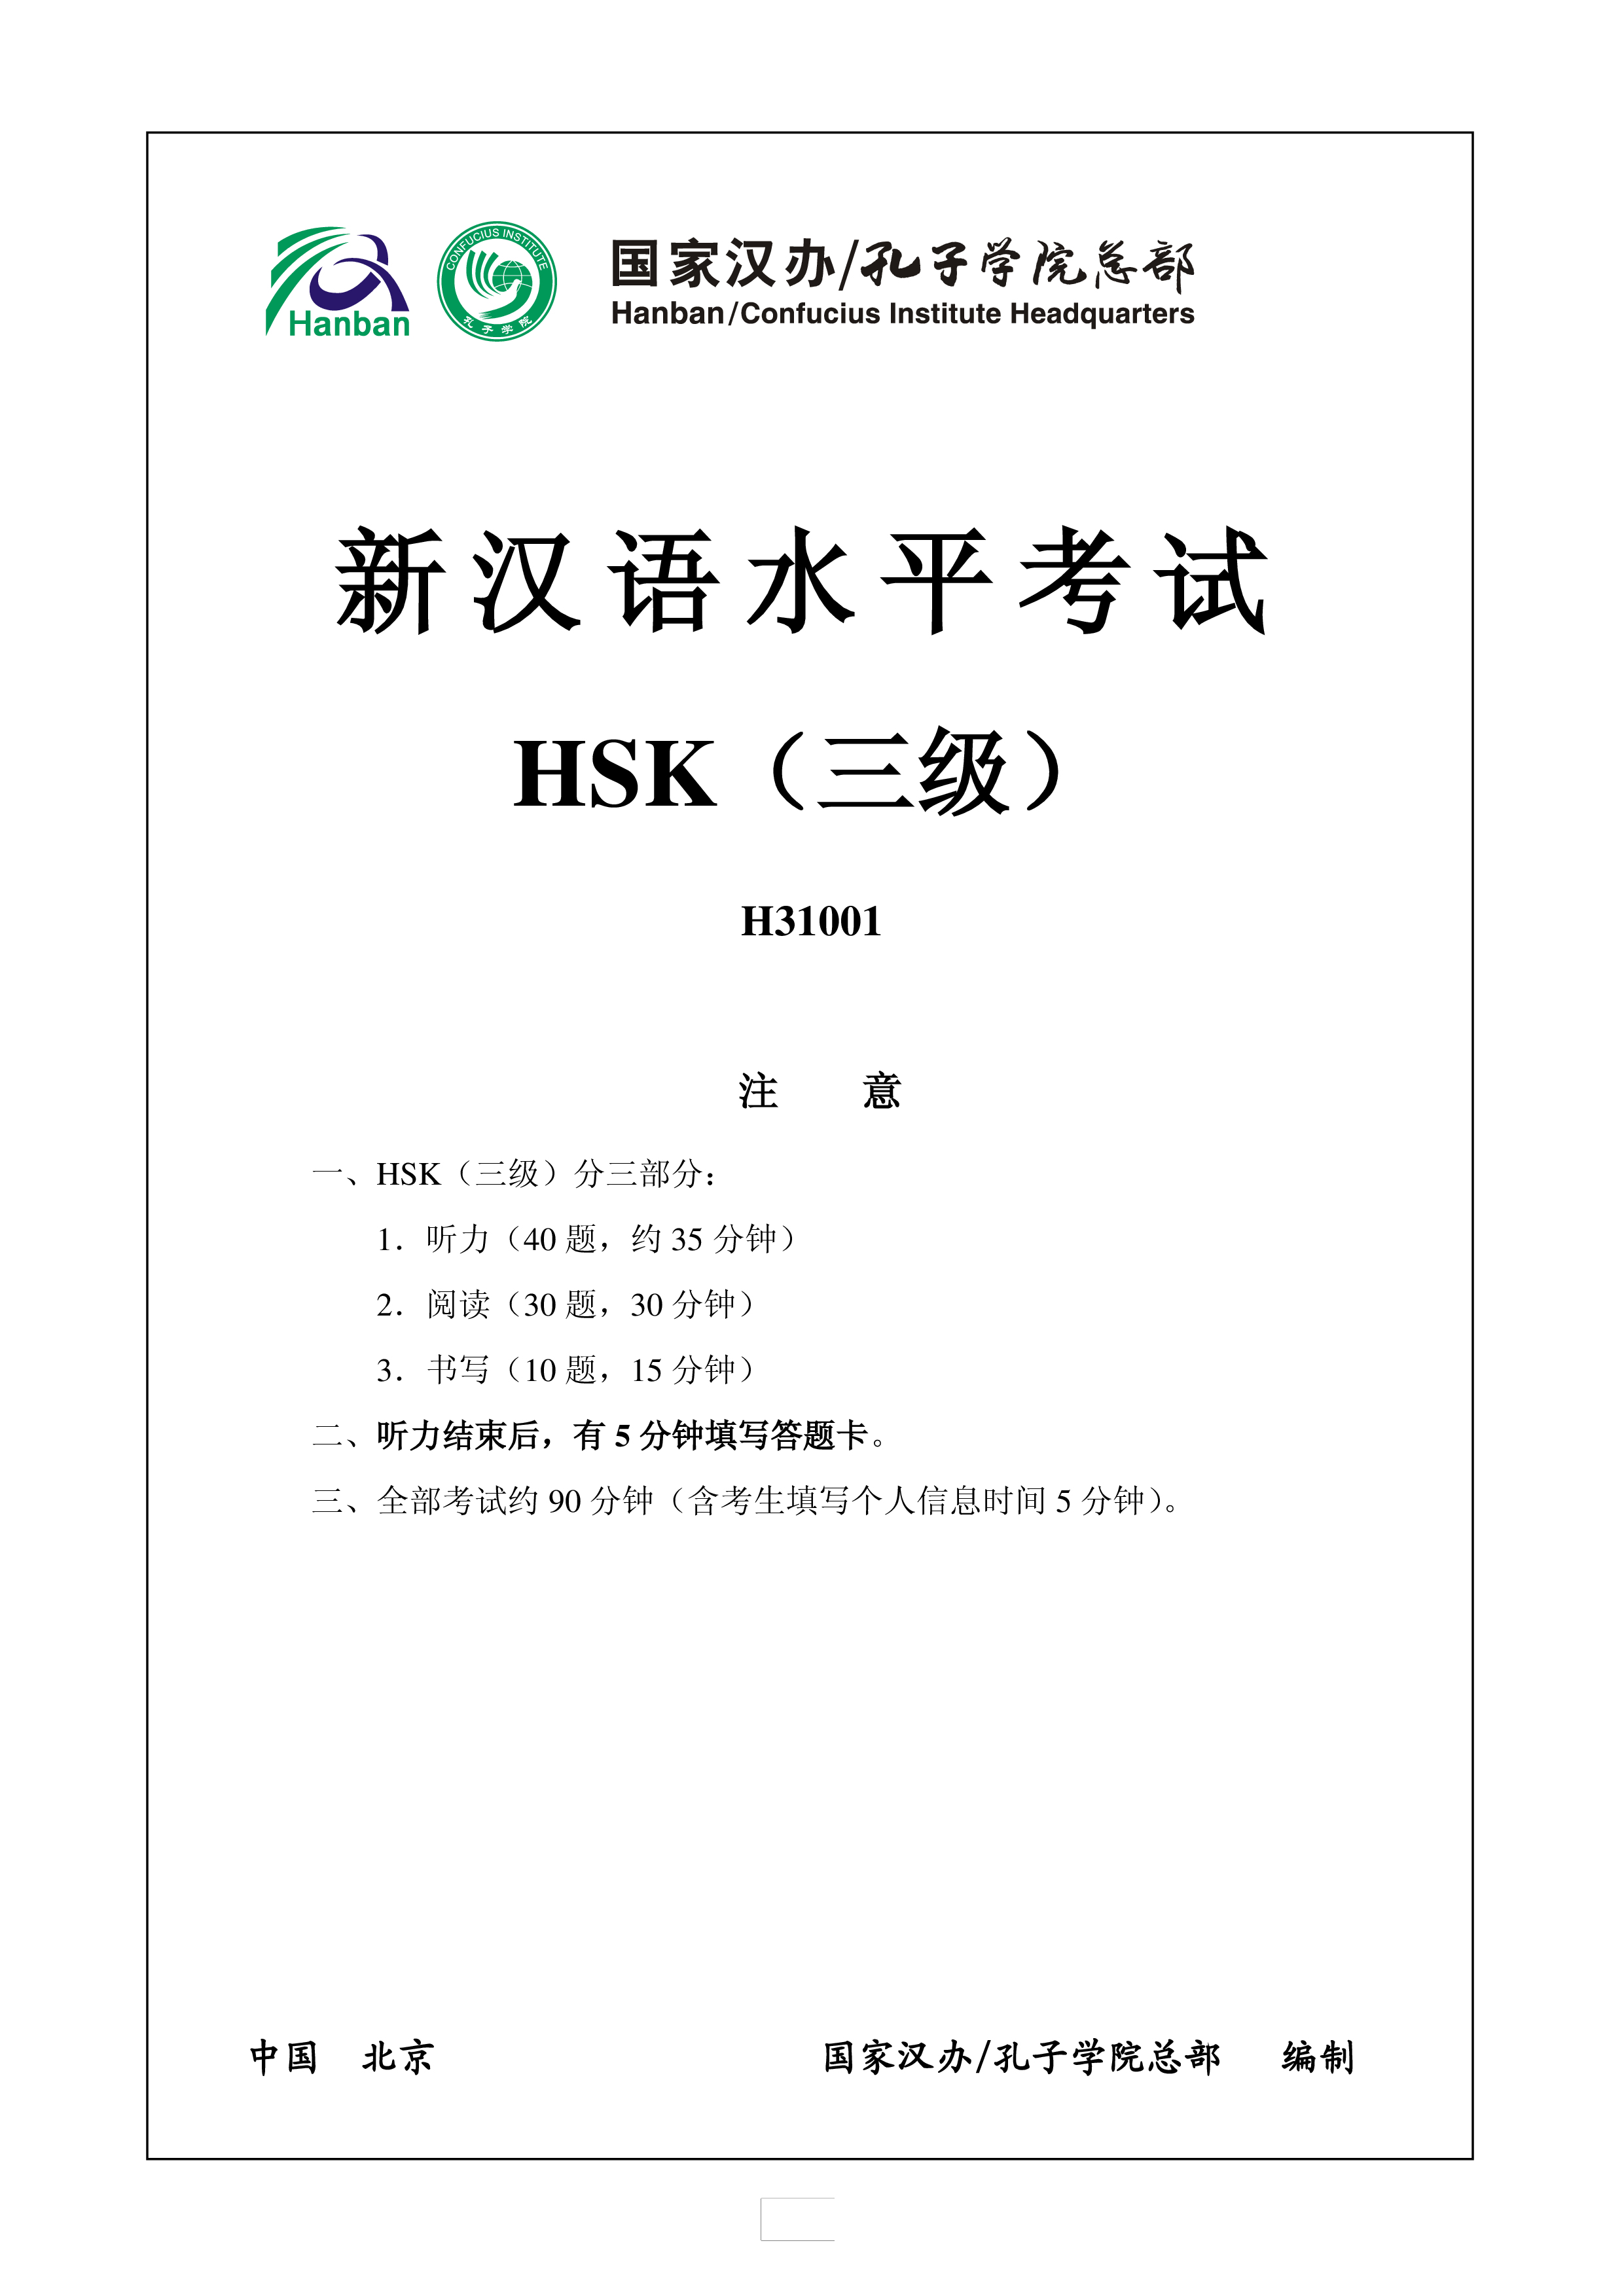 HSK 3 Chinese Exam including Answers # HSK 3 H31001 main image